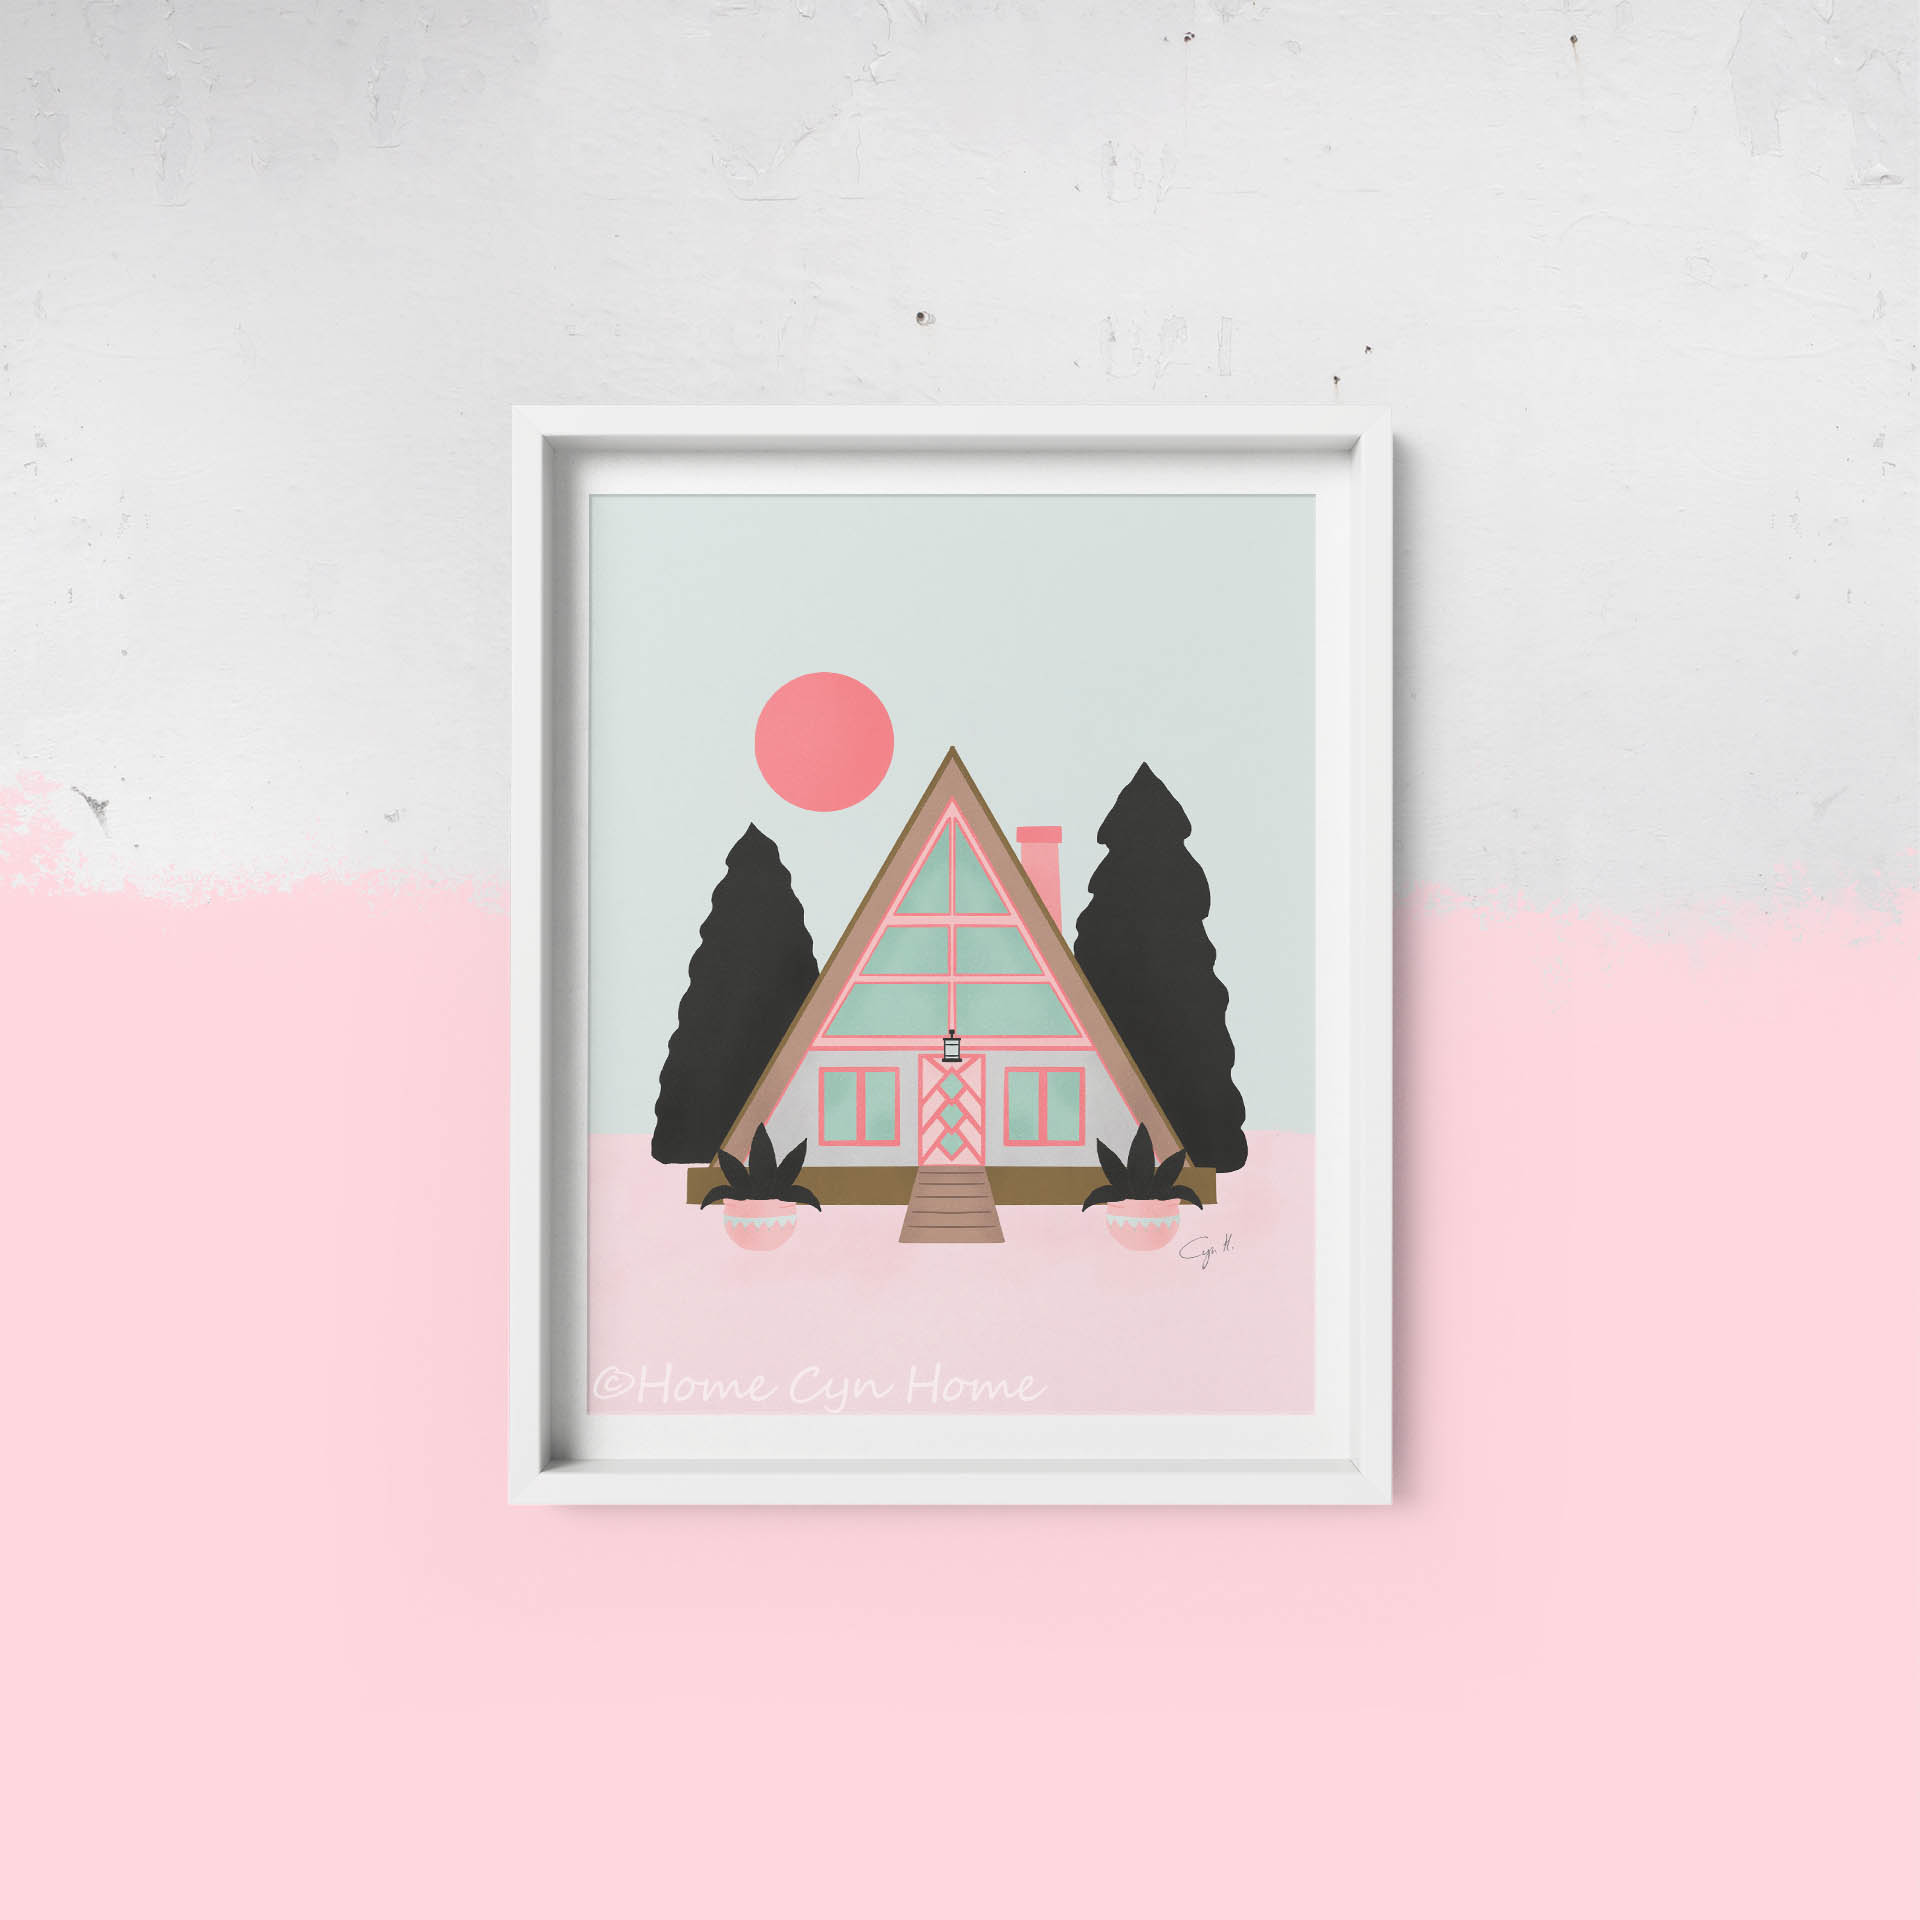 A cute pastel pink and mint A frame cabin surrounded by pine trees